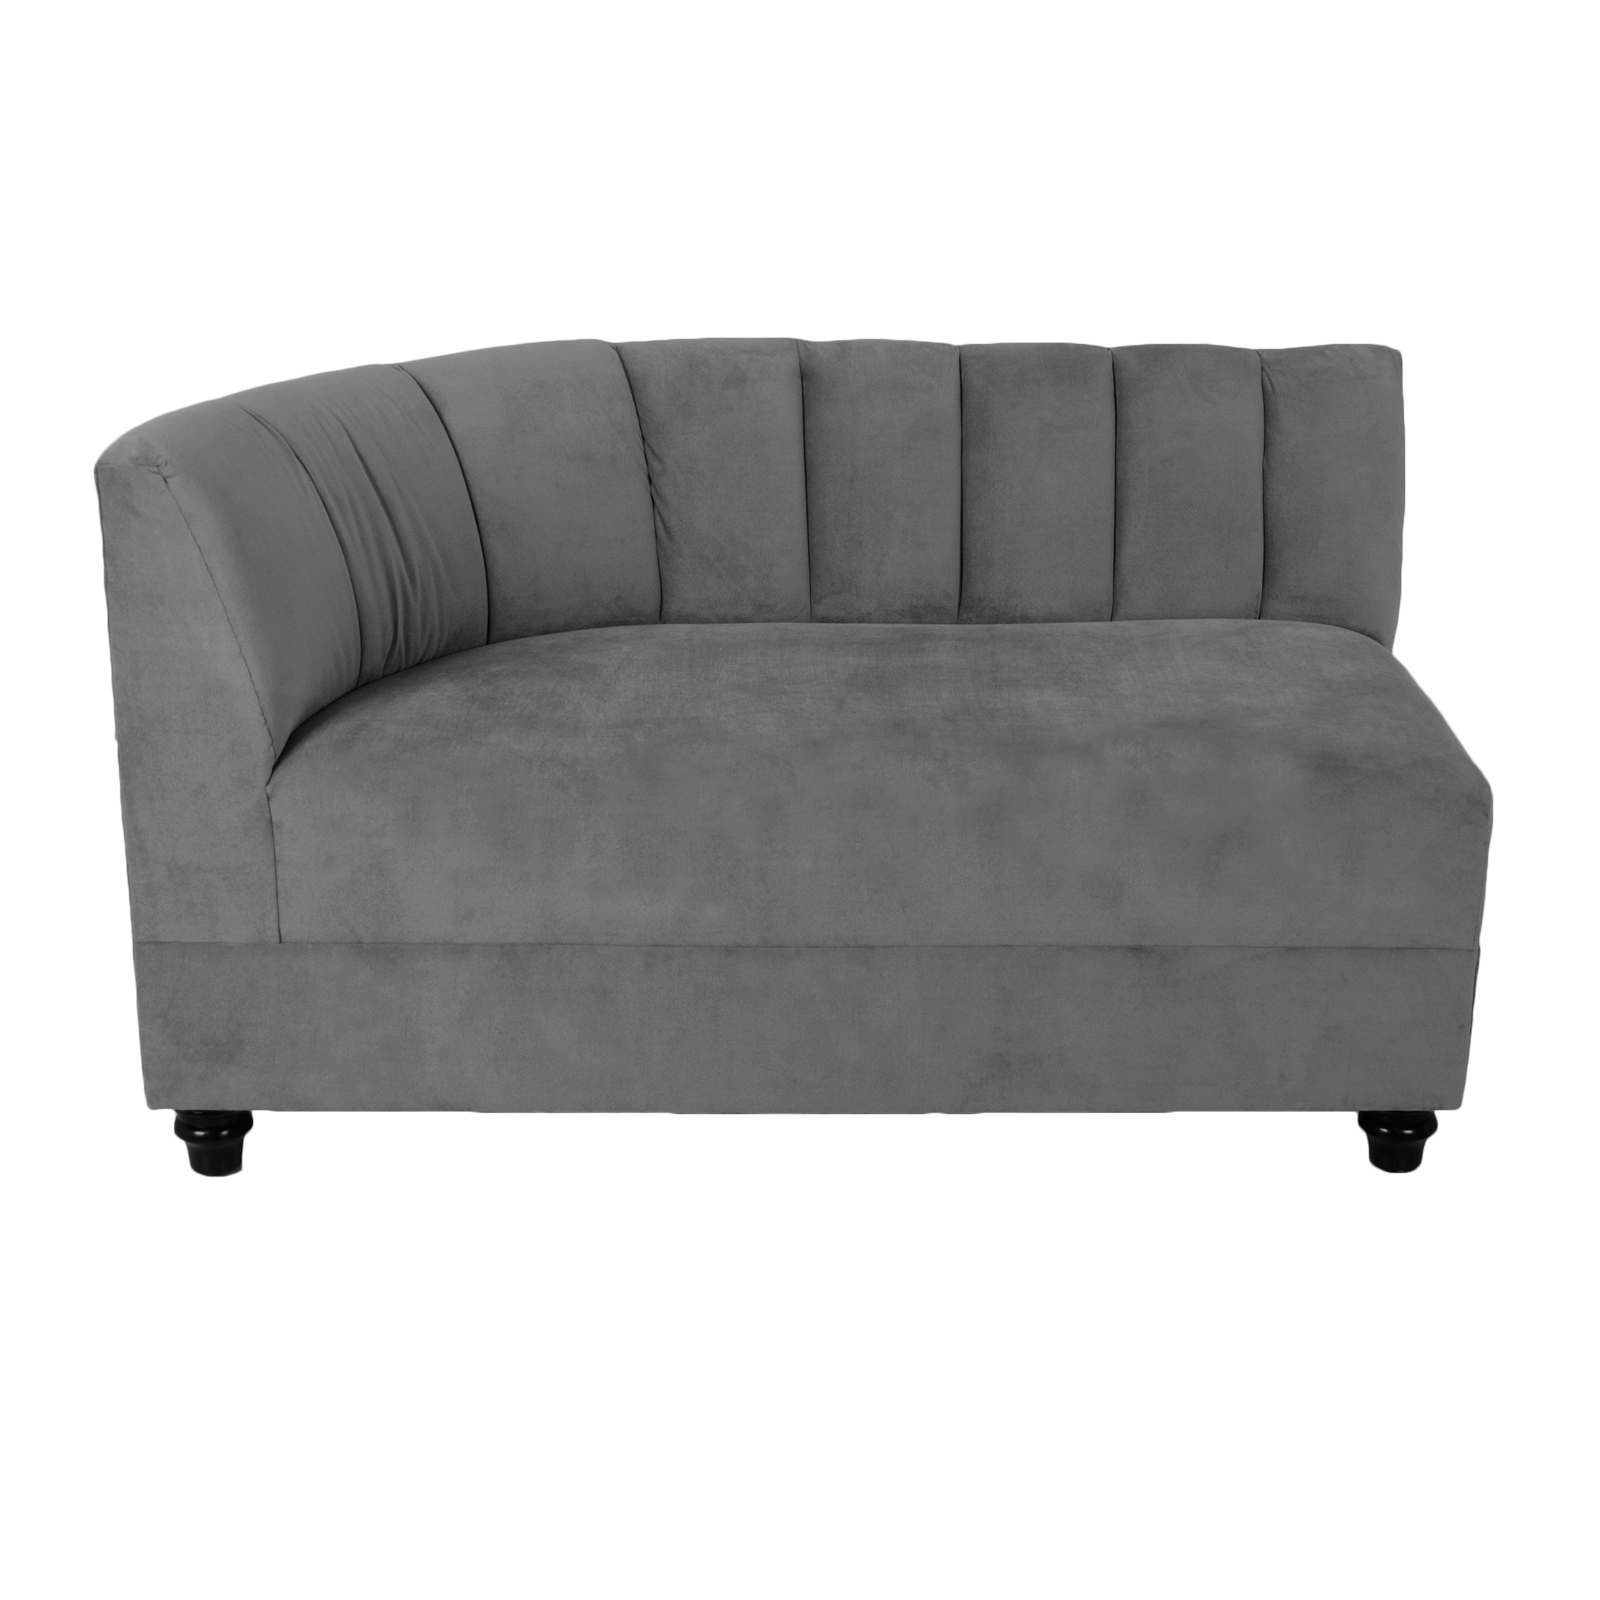 Fantastic Curved Sofa Rentals Event Furniture Rental Formdecor Caraccident5 Cool Chair Designs And Ideas Caraccident5Info